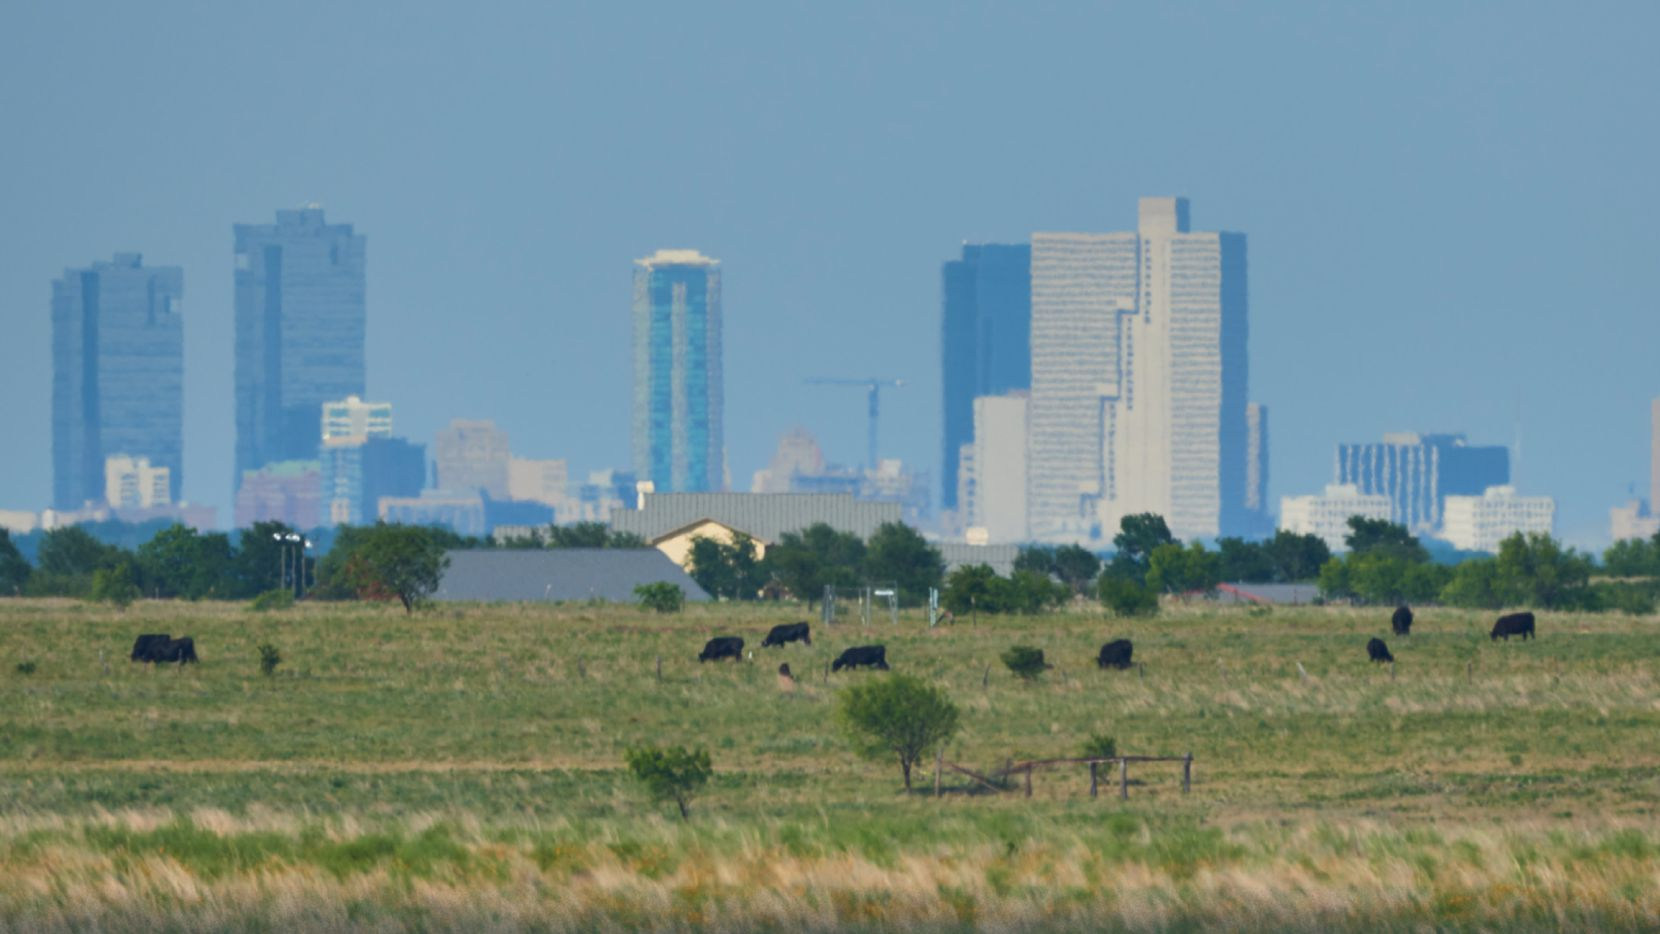 The Veale Ranch is about 11 miles west of downtown Fort Worth.